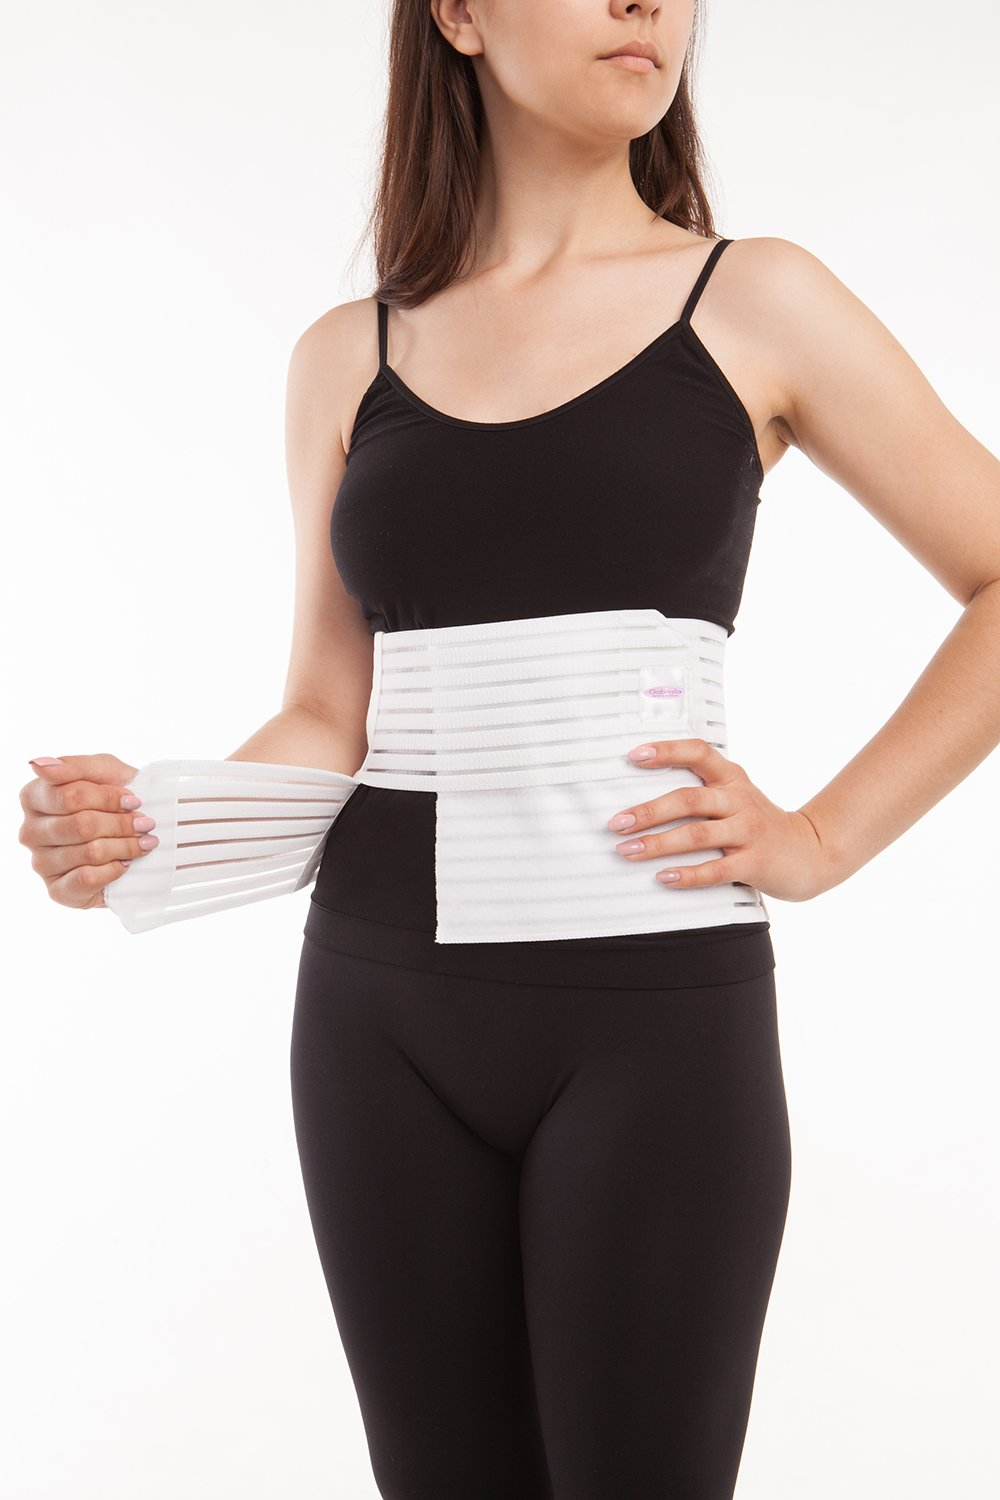 Abdominal Binder - Breathable Light Support 8 inches - Gabrialla